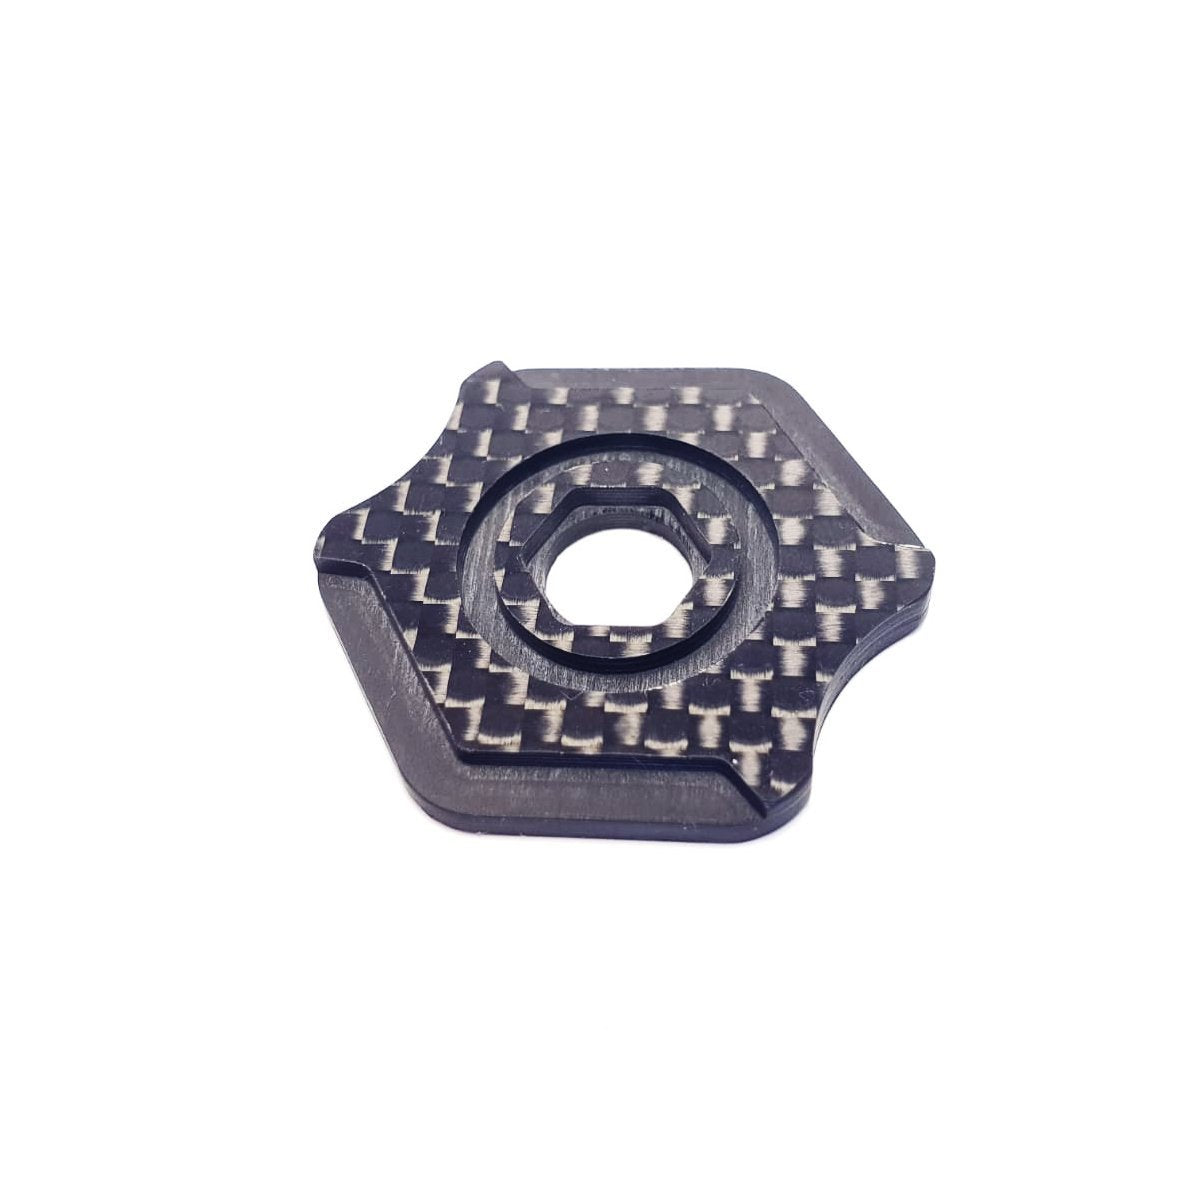 GEOCARBON DAMPER WRENCH FOR AWESOMATIX - GRIPWORKS RC